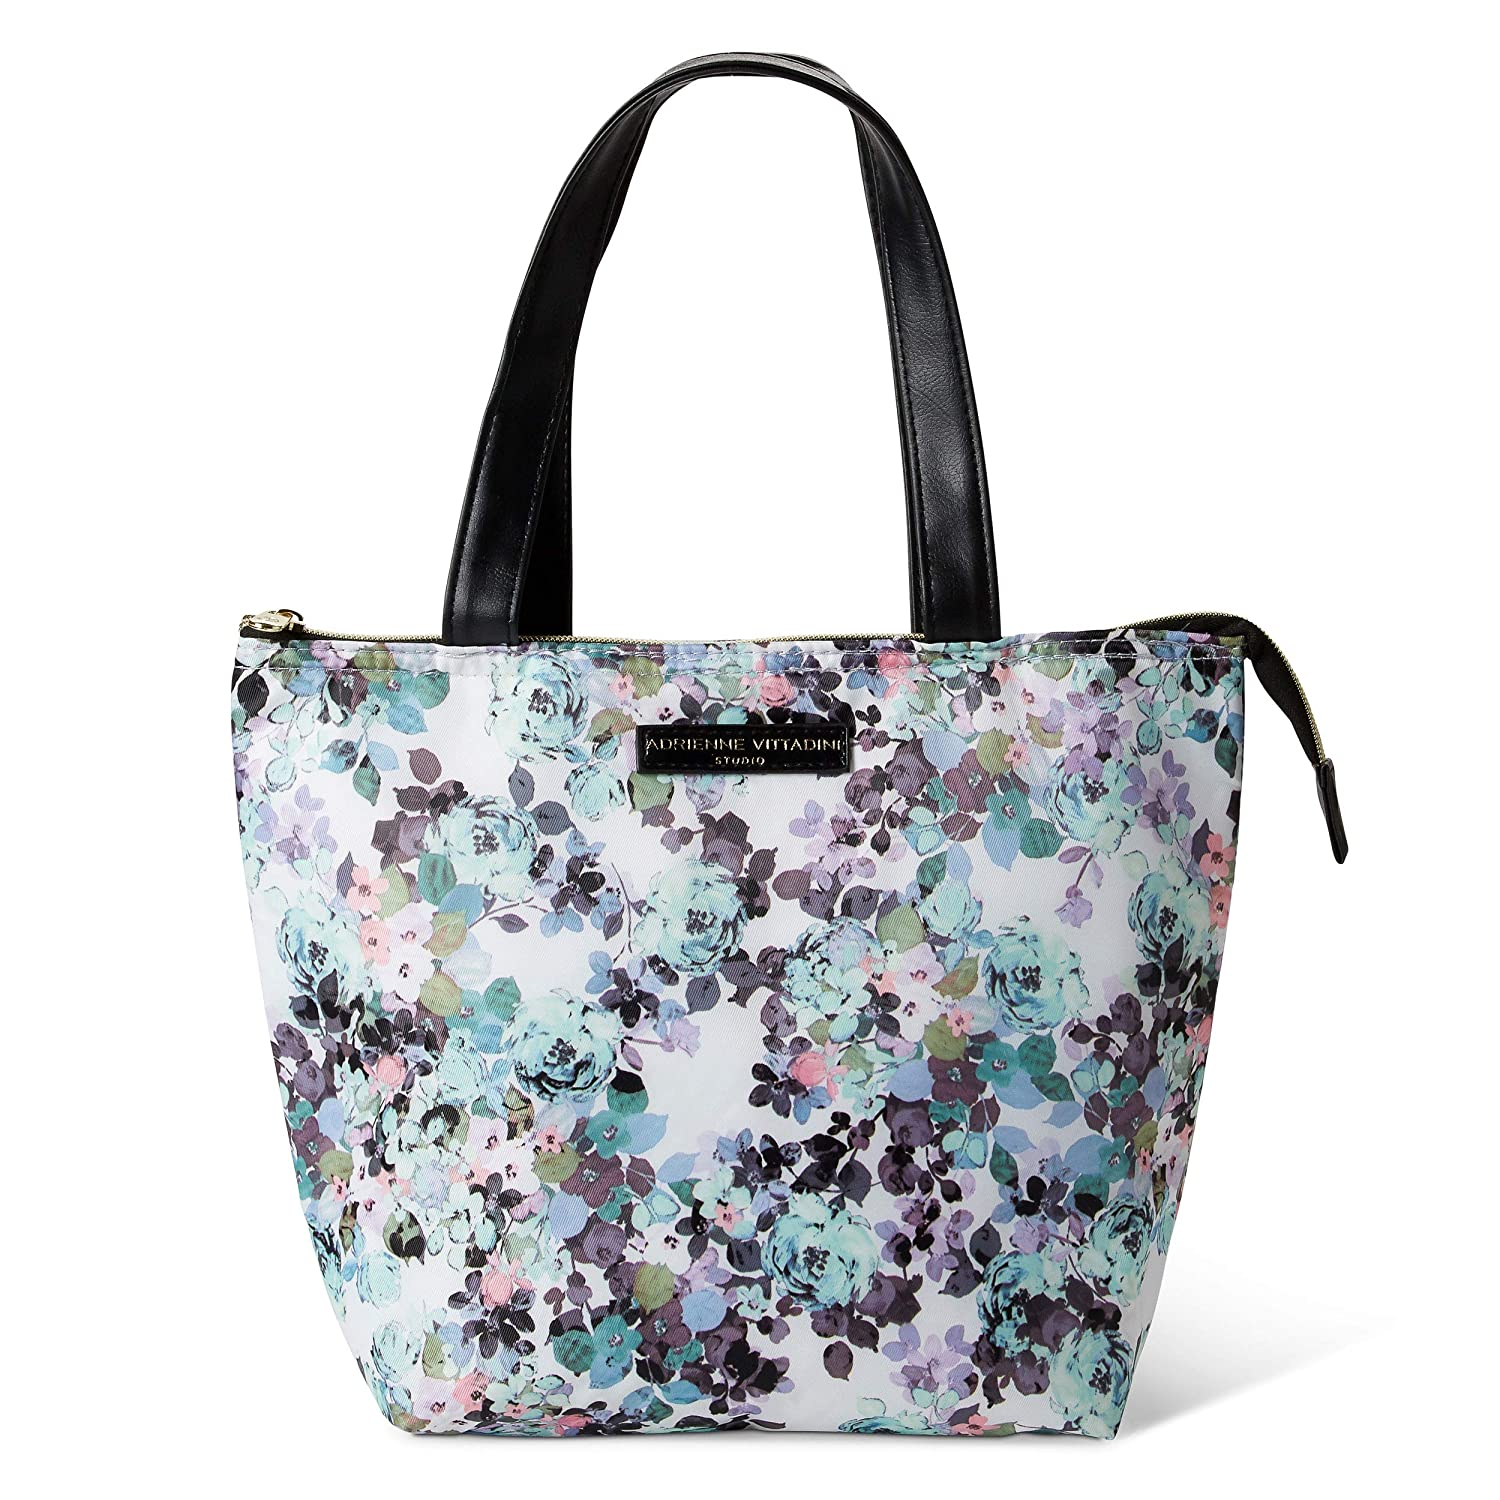 a8bd9d63b495 Insulated Lunch Tote Bag Set: Adrienne Vittadini Lunch Box - Large Reusable  Lunch Bag for Women - Watercolor Floral